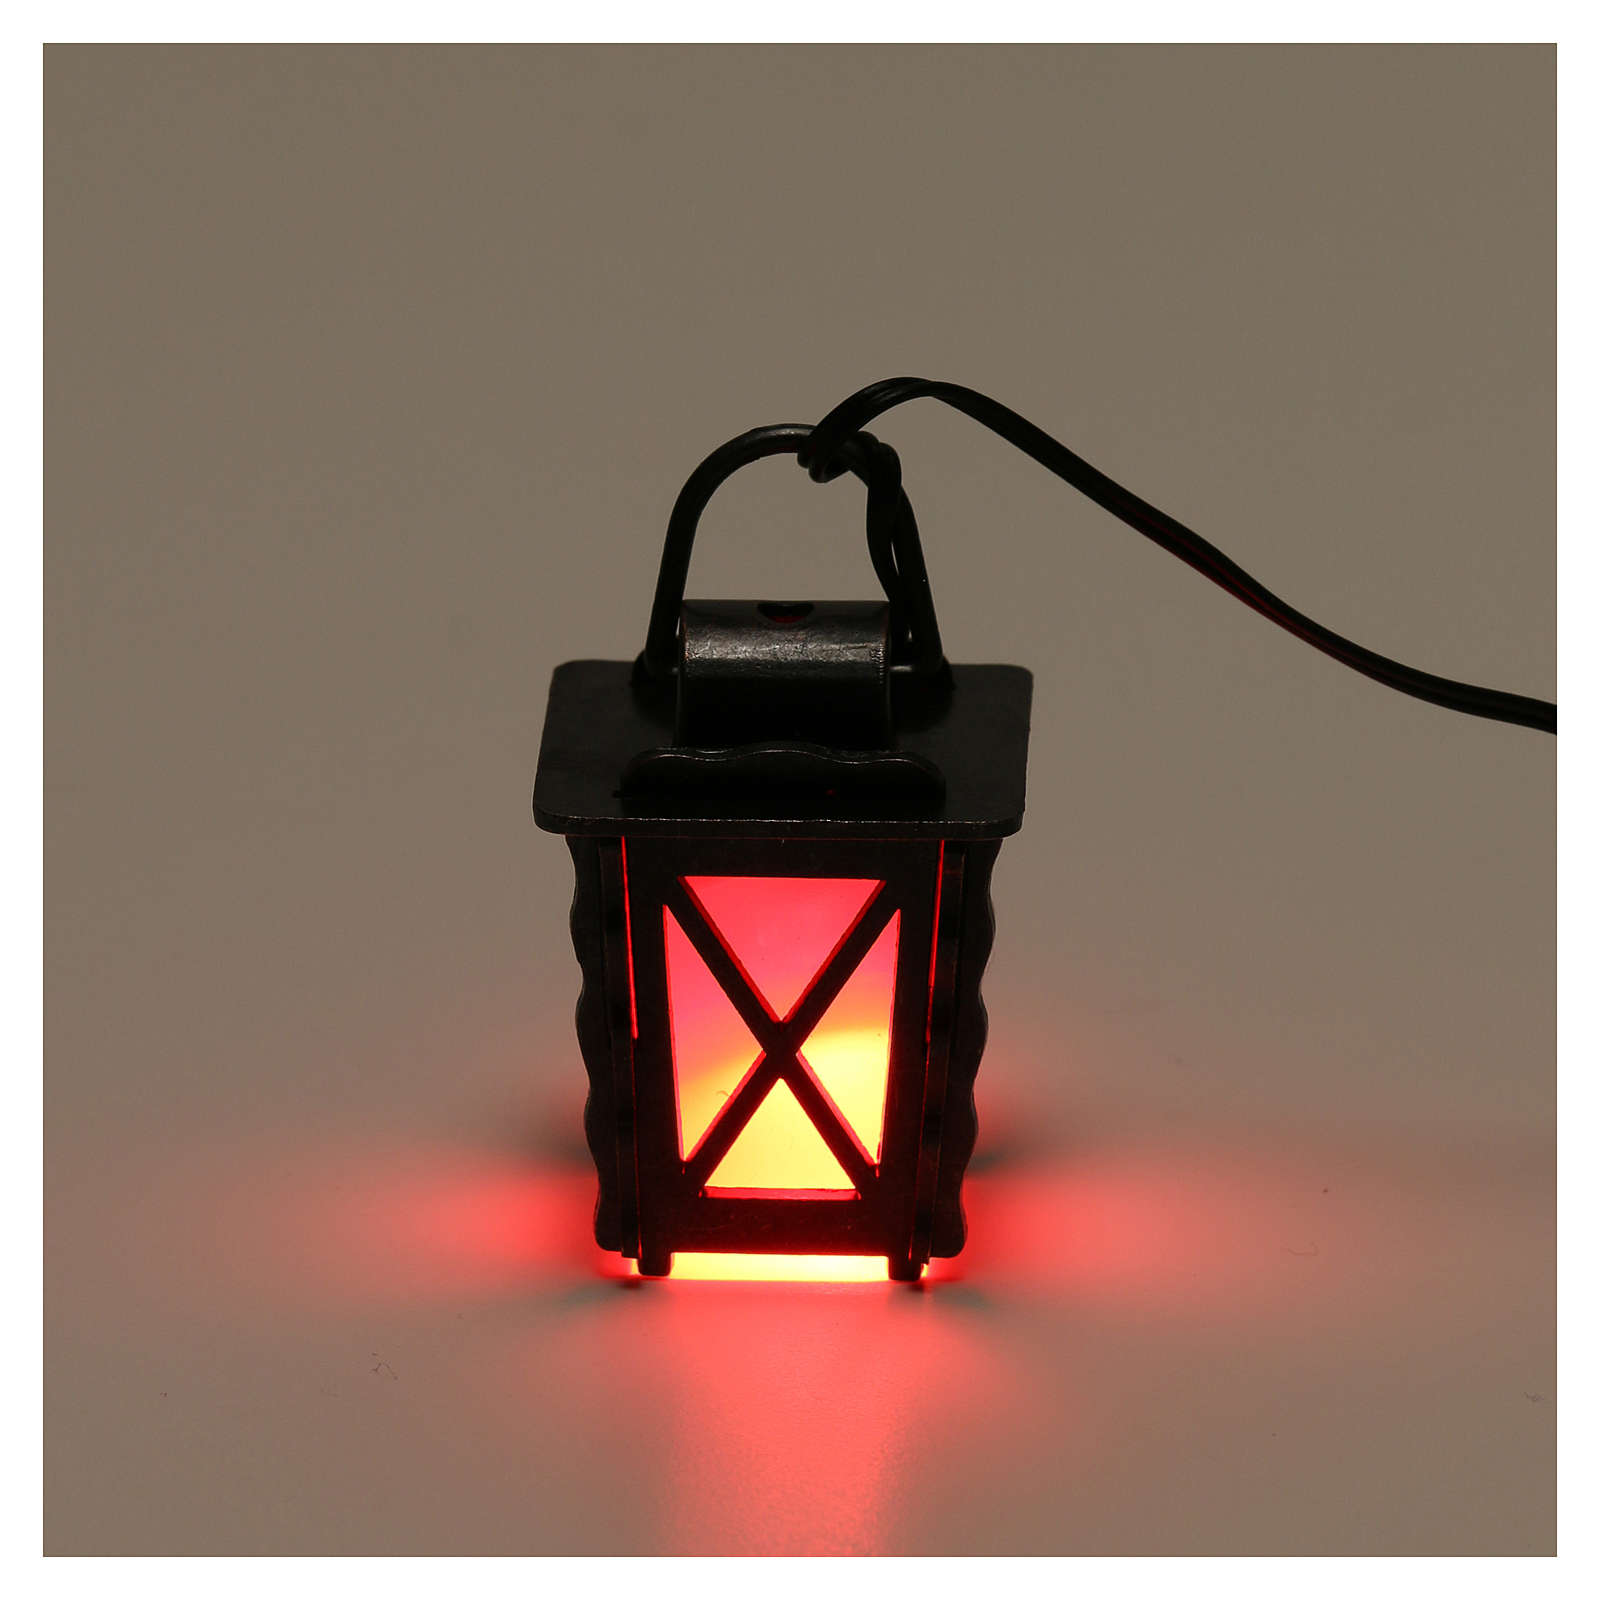 Metal lantern with red light h 4 cm, for 8-10 nativity low voltage 4